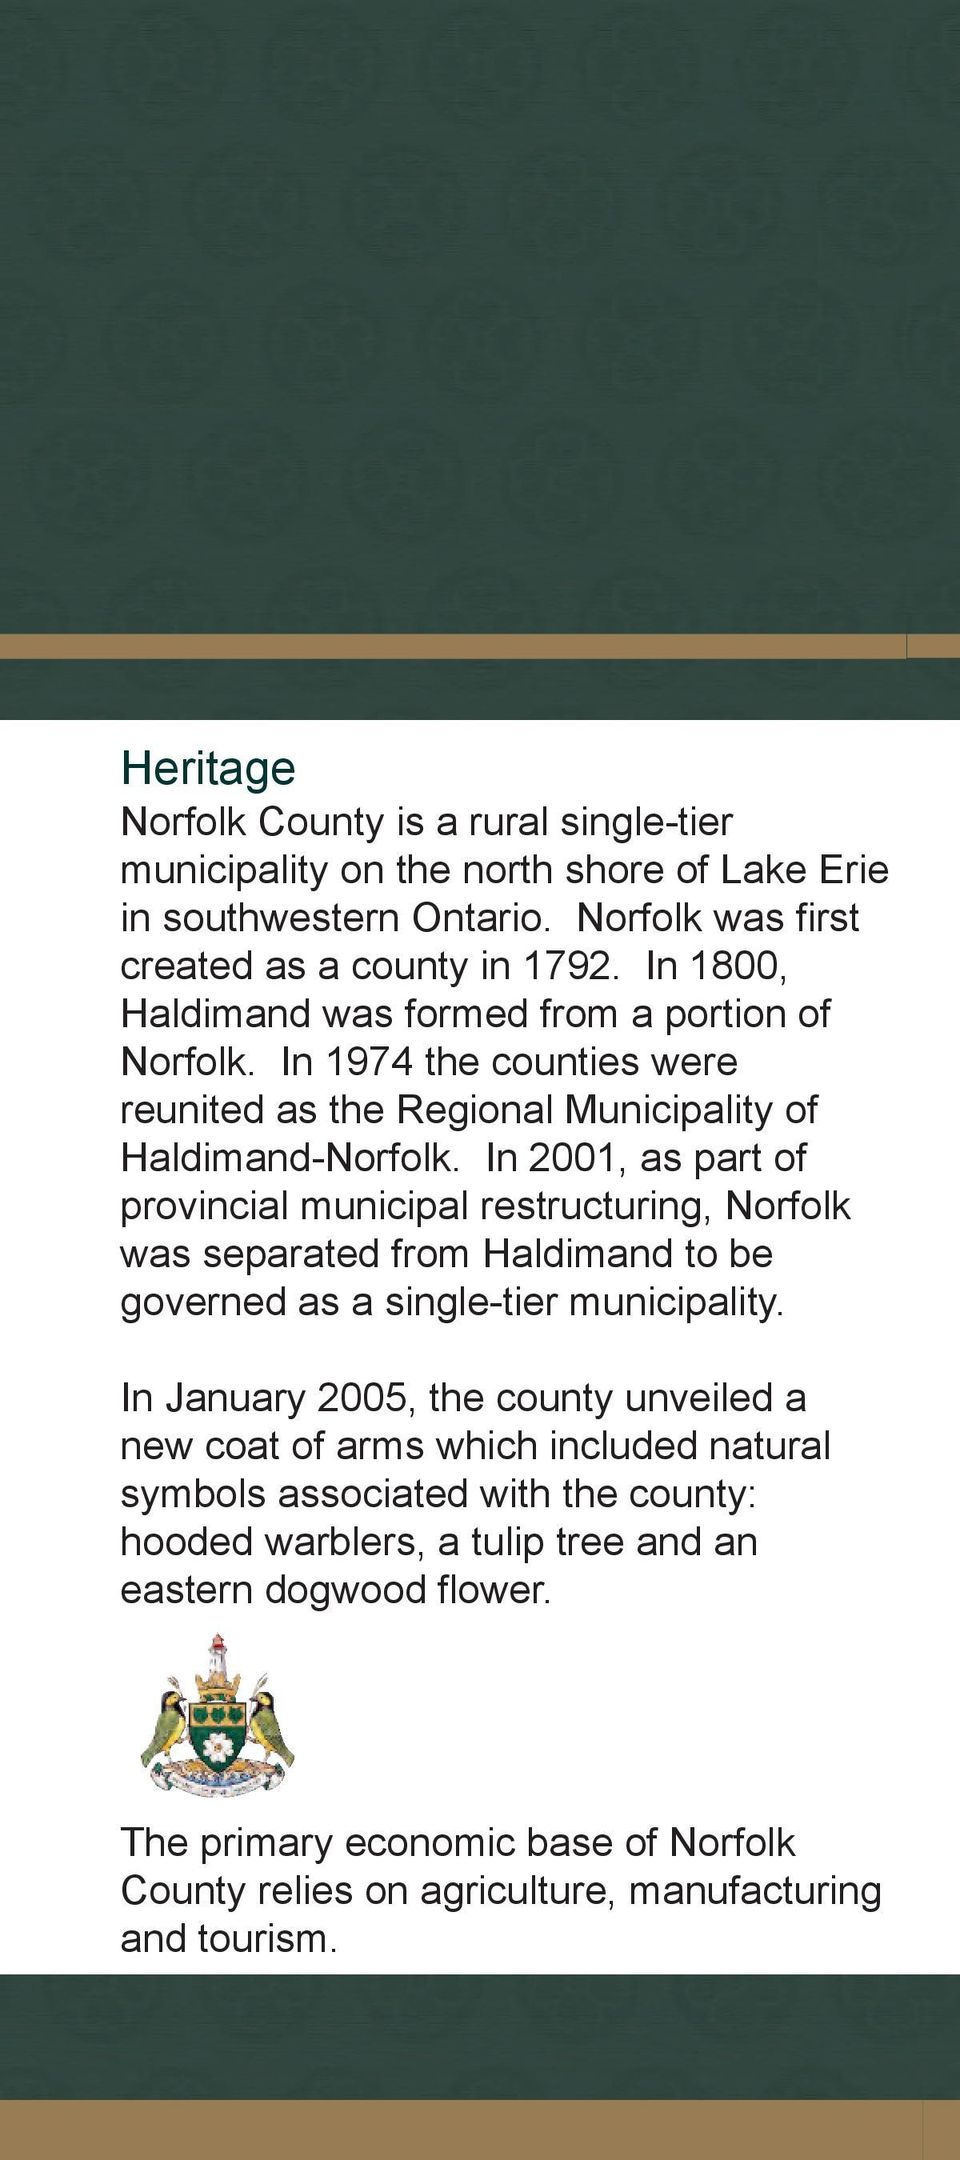 In 2001, as part of provincial municipal restructuring, Norfolk was separated from Haldimand to be governed as a single-tier municipality.